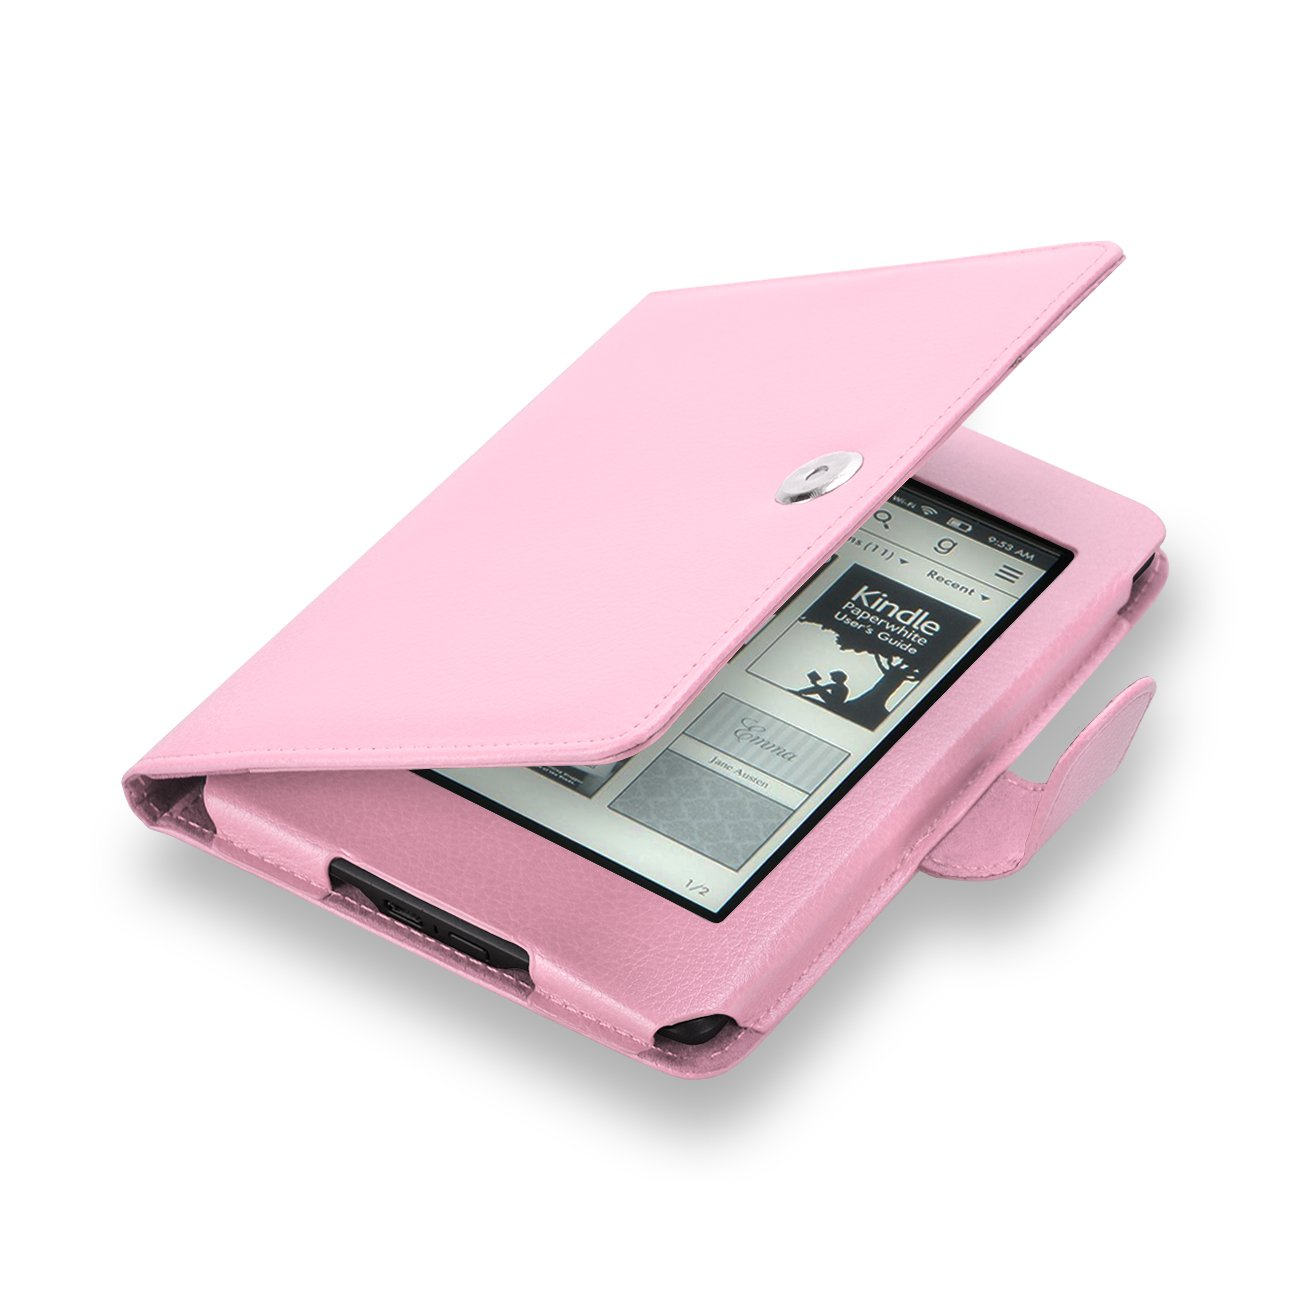 Elsse For Kindle 6'' Glare Free - Folio Case Cover for Kindle (7th Generation), Light Pink - will not fit previous generation Kindle devices